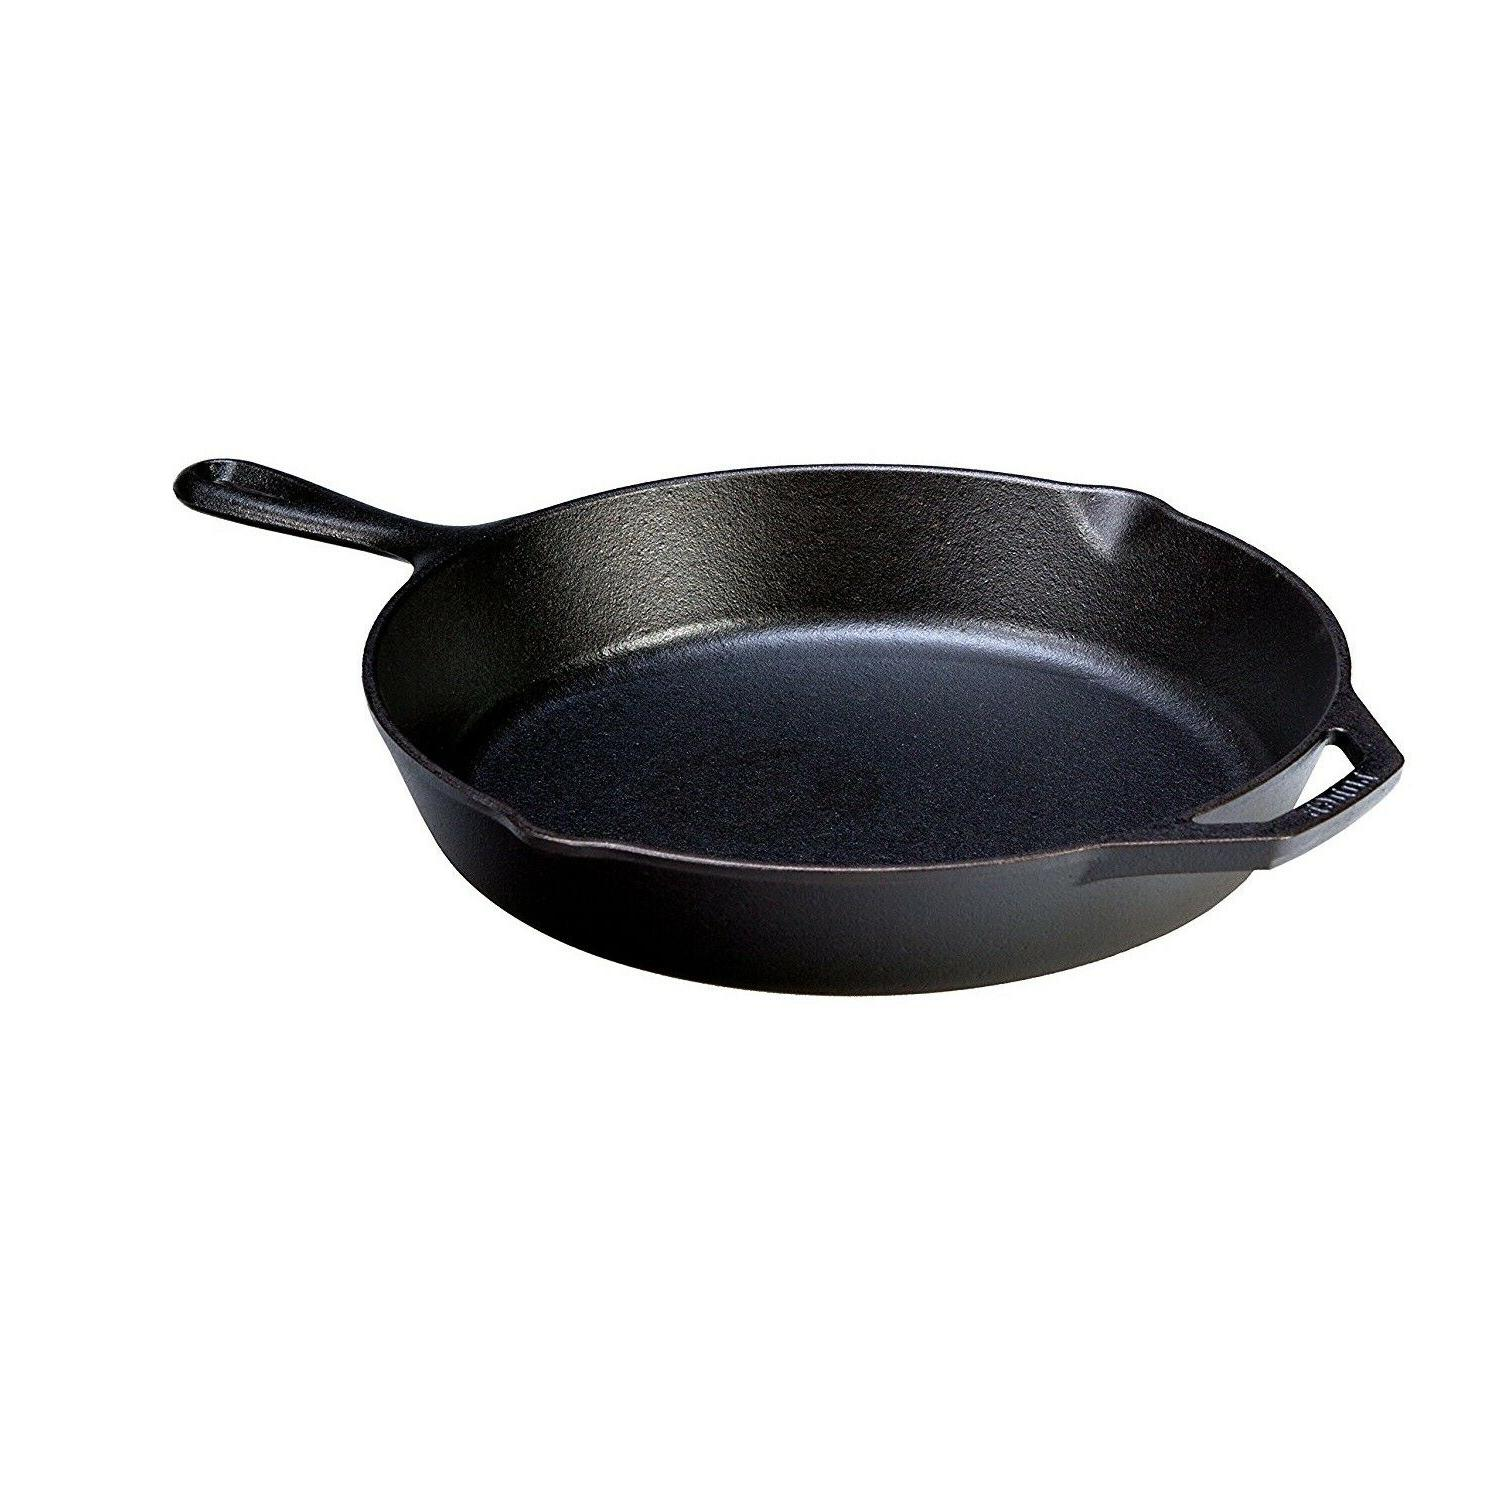 Cast Iron Skillet 12 Inch lodge With Assist Handle Pre Seaso